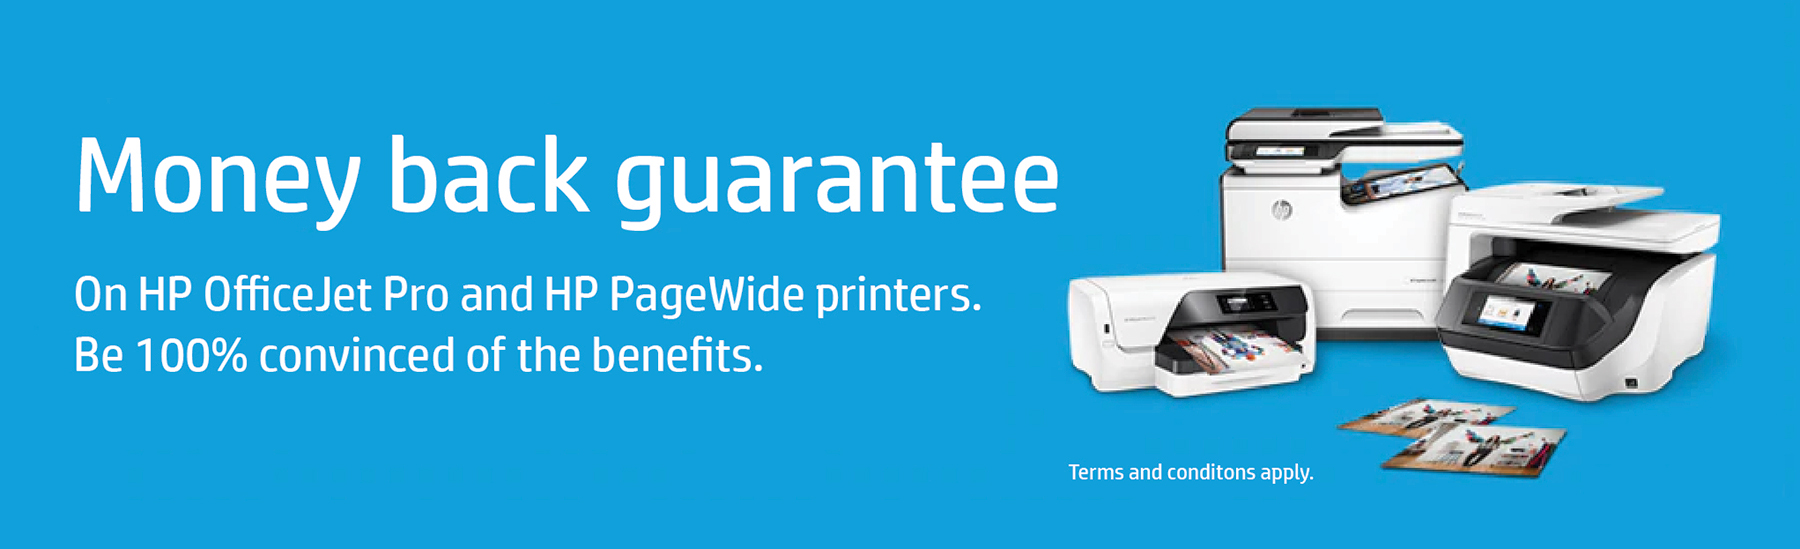 HP OfficeJet & Pagewide Money Back Guarantee